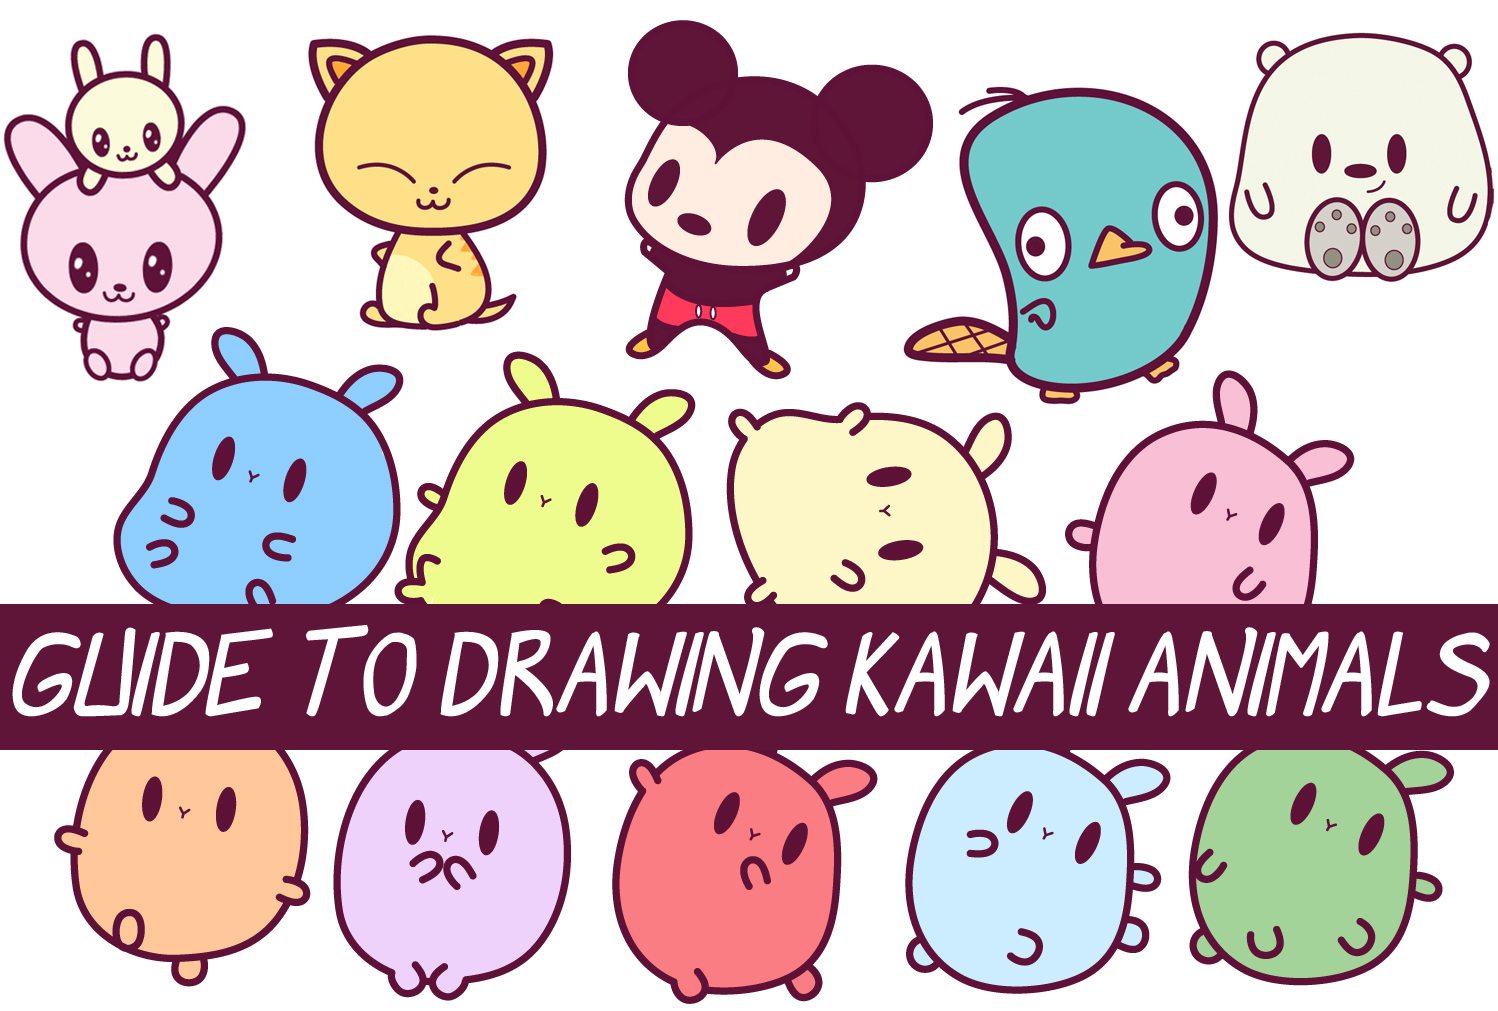 Cute Stitch On Side Wallpaper Easy Guide To Drawing Kawaii Characters Part 2 How To